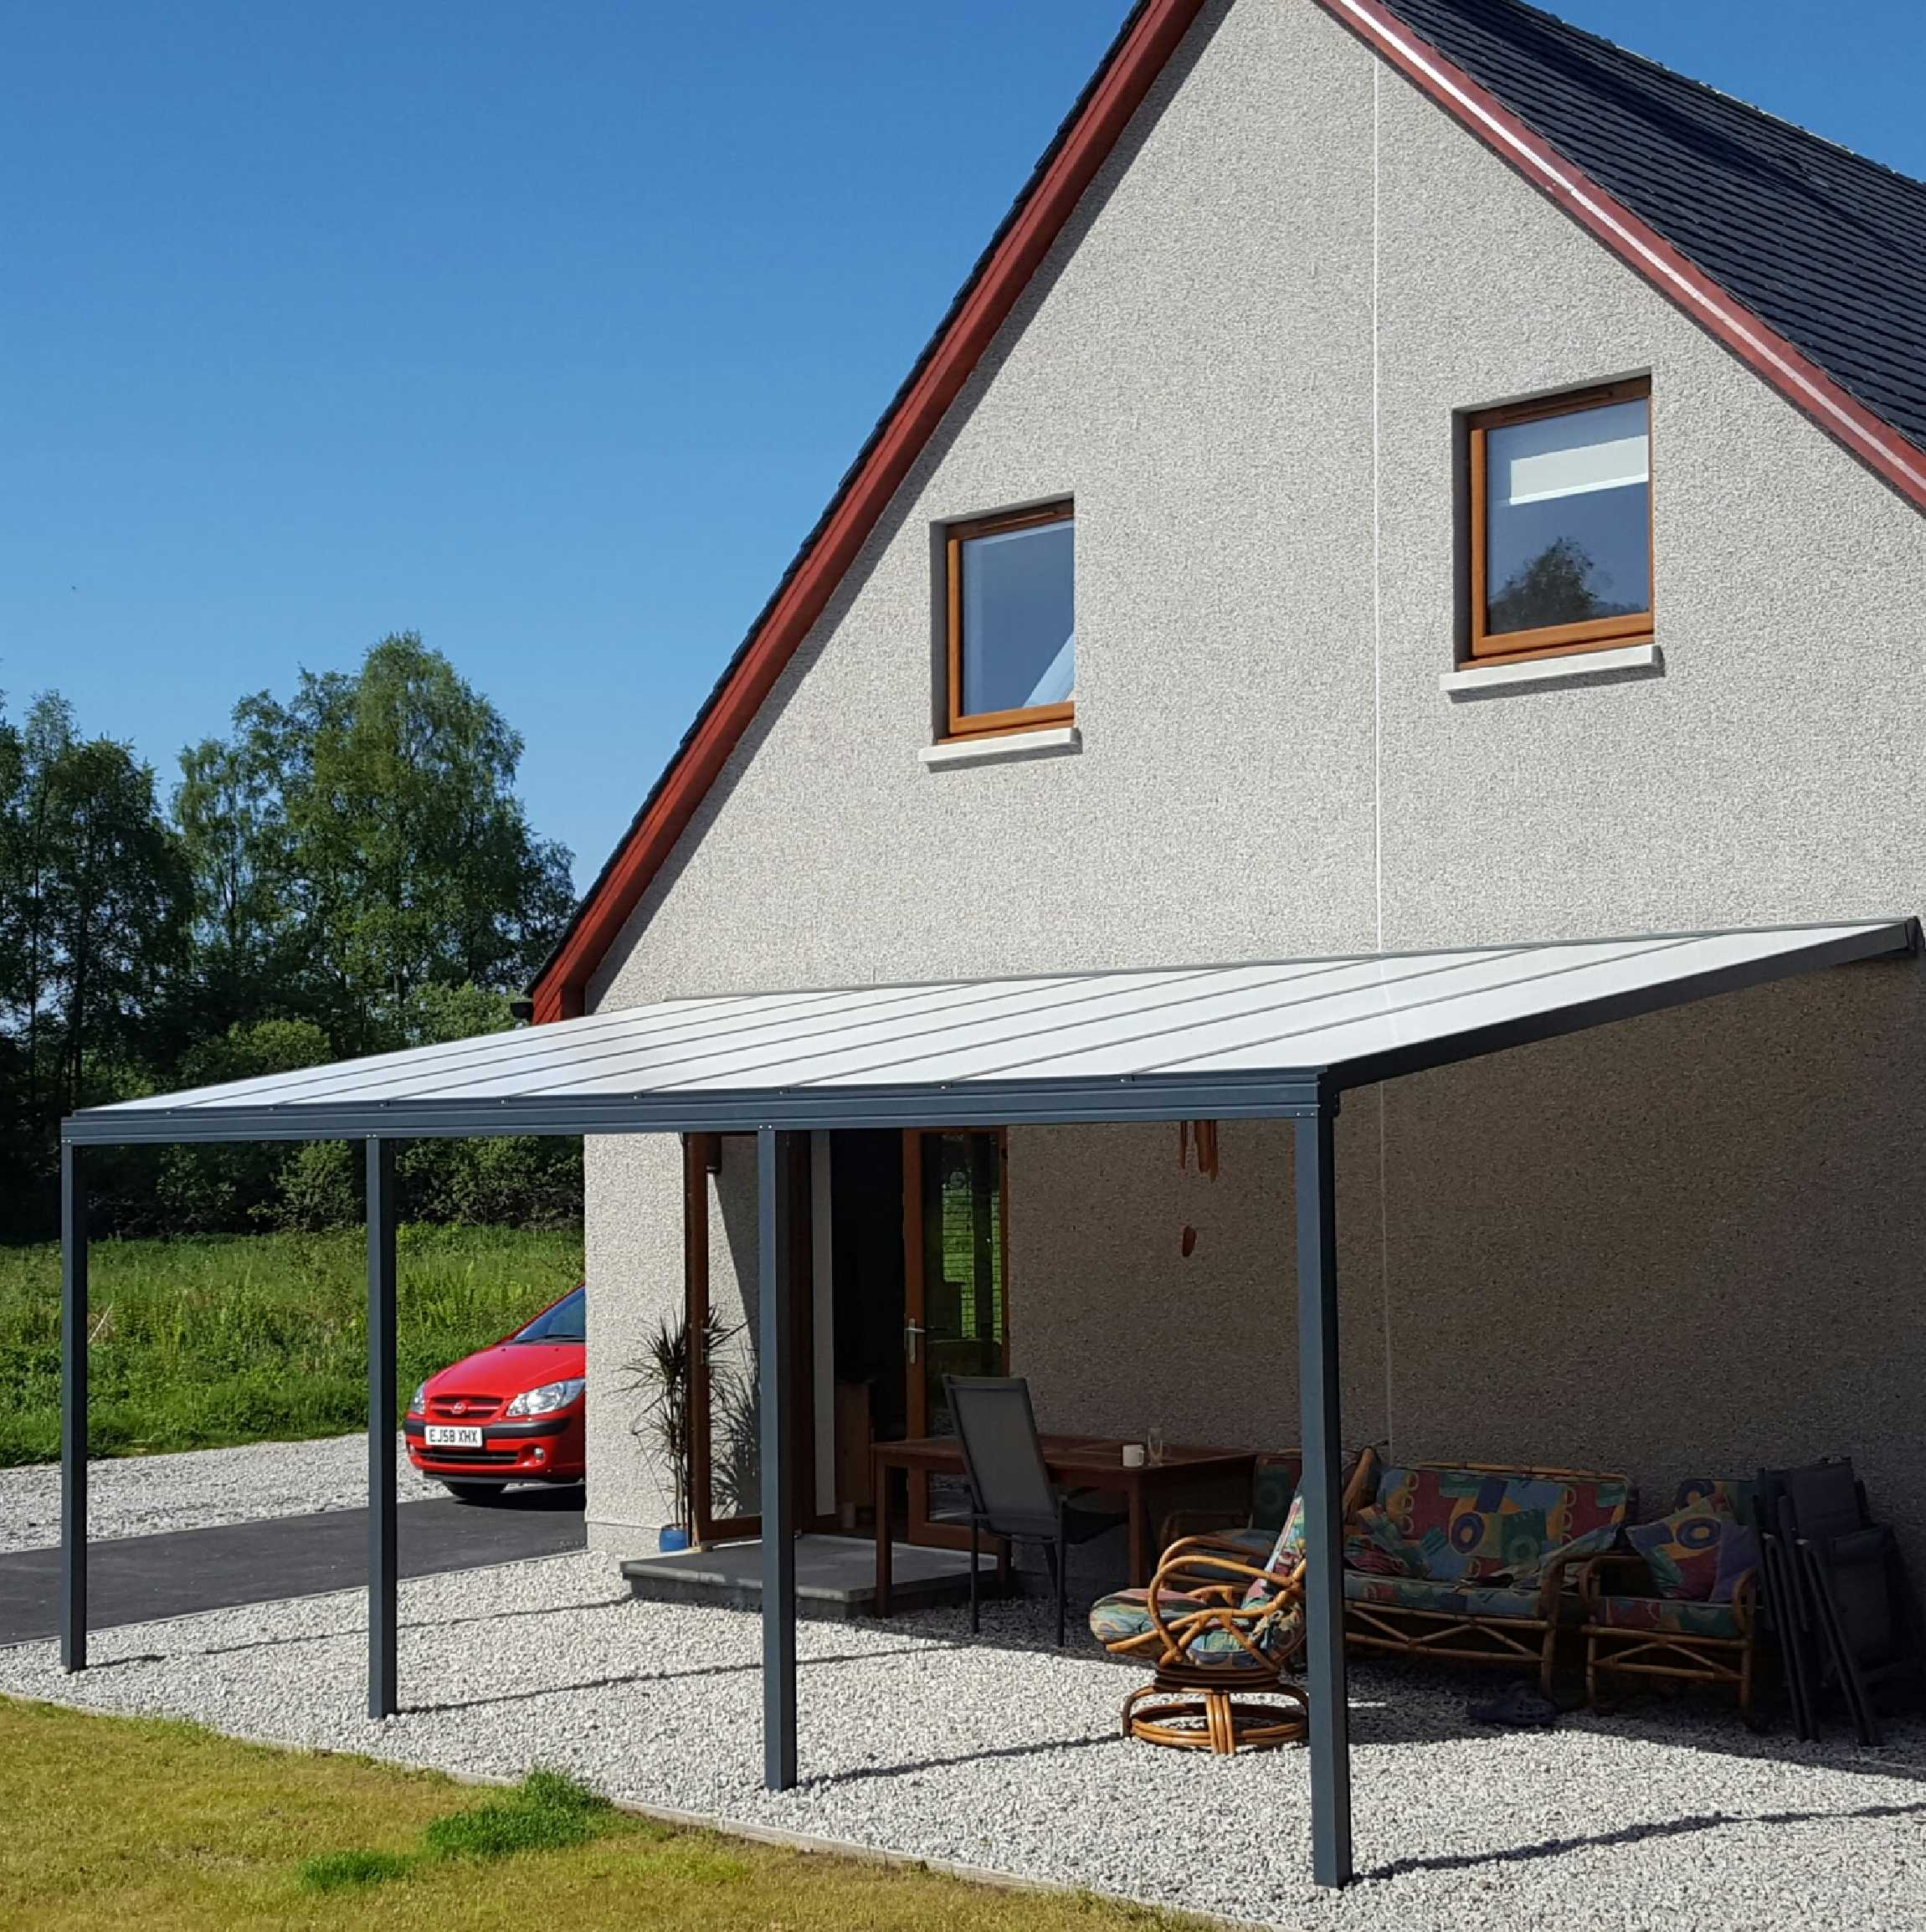 Great selection of Omega Smart Lean-To Canopy, Anthracite Grey, 16mm Polycarbonate Glazing - 12.0m (W) x 2.0m (P), (5) Supporting Posts